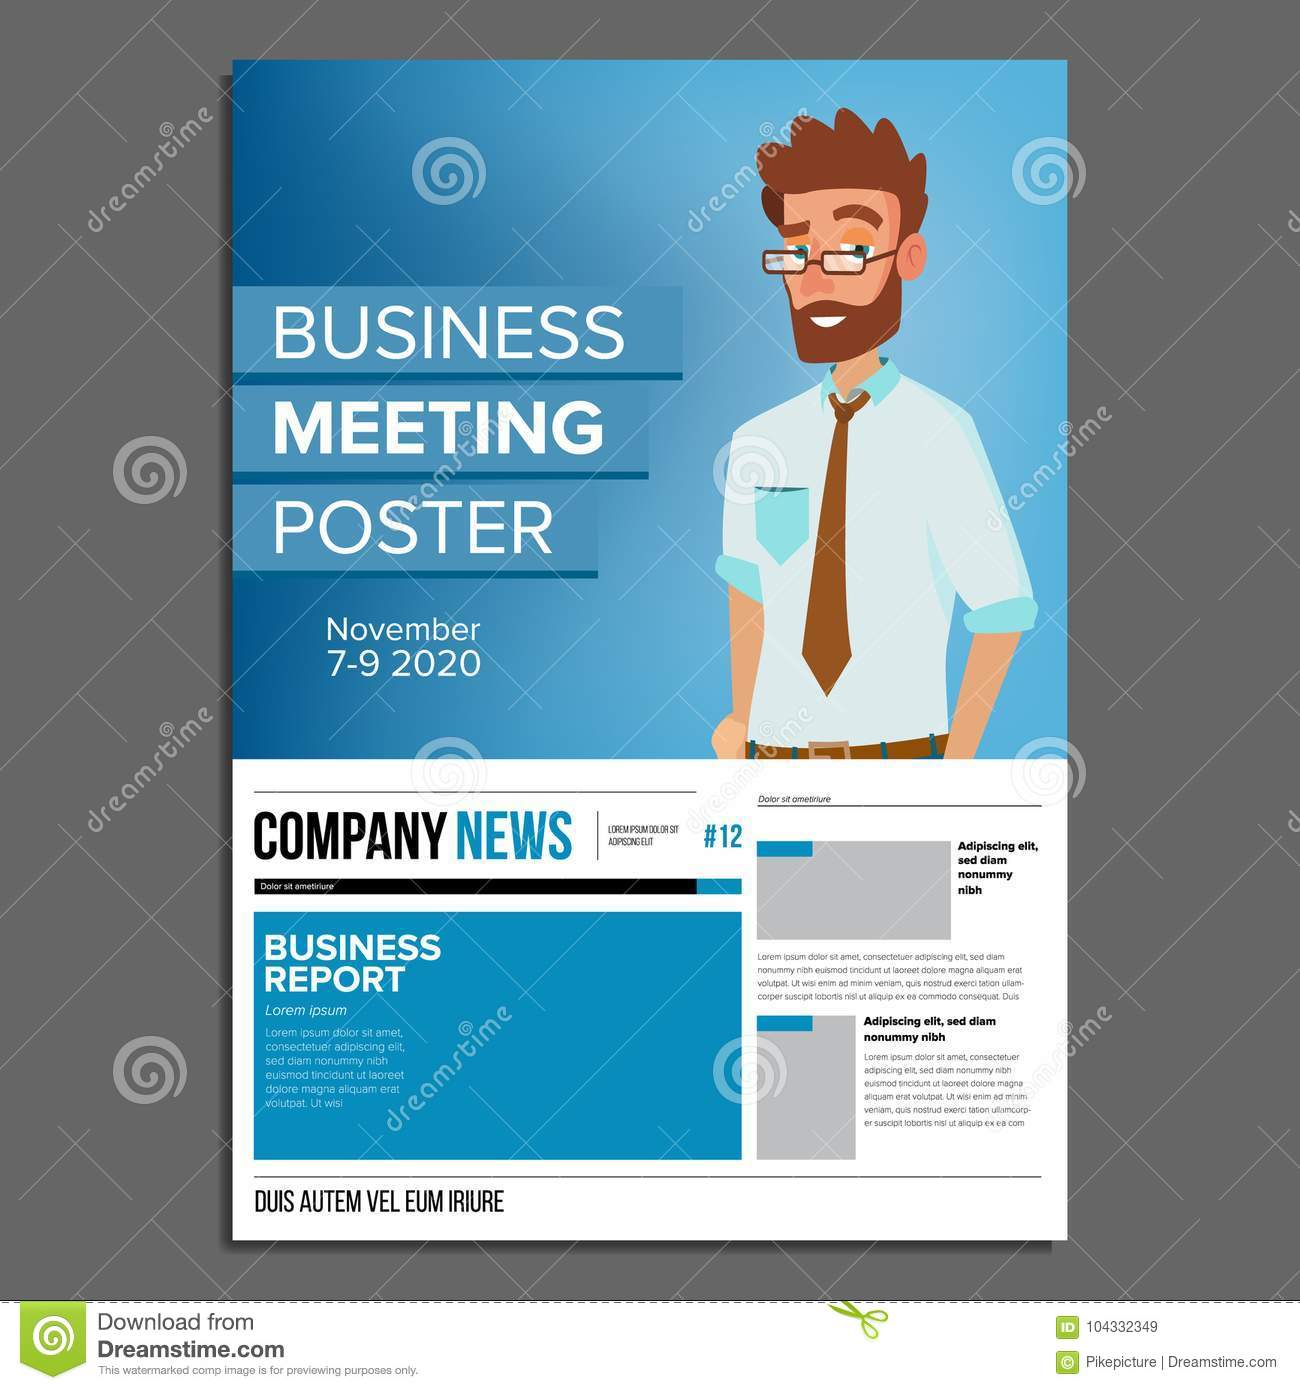 Business Meeting Poster Vector Businessman Invitation And Date